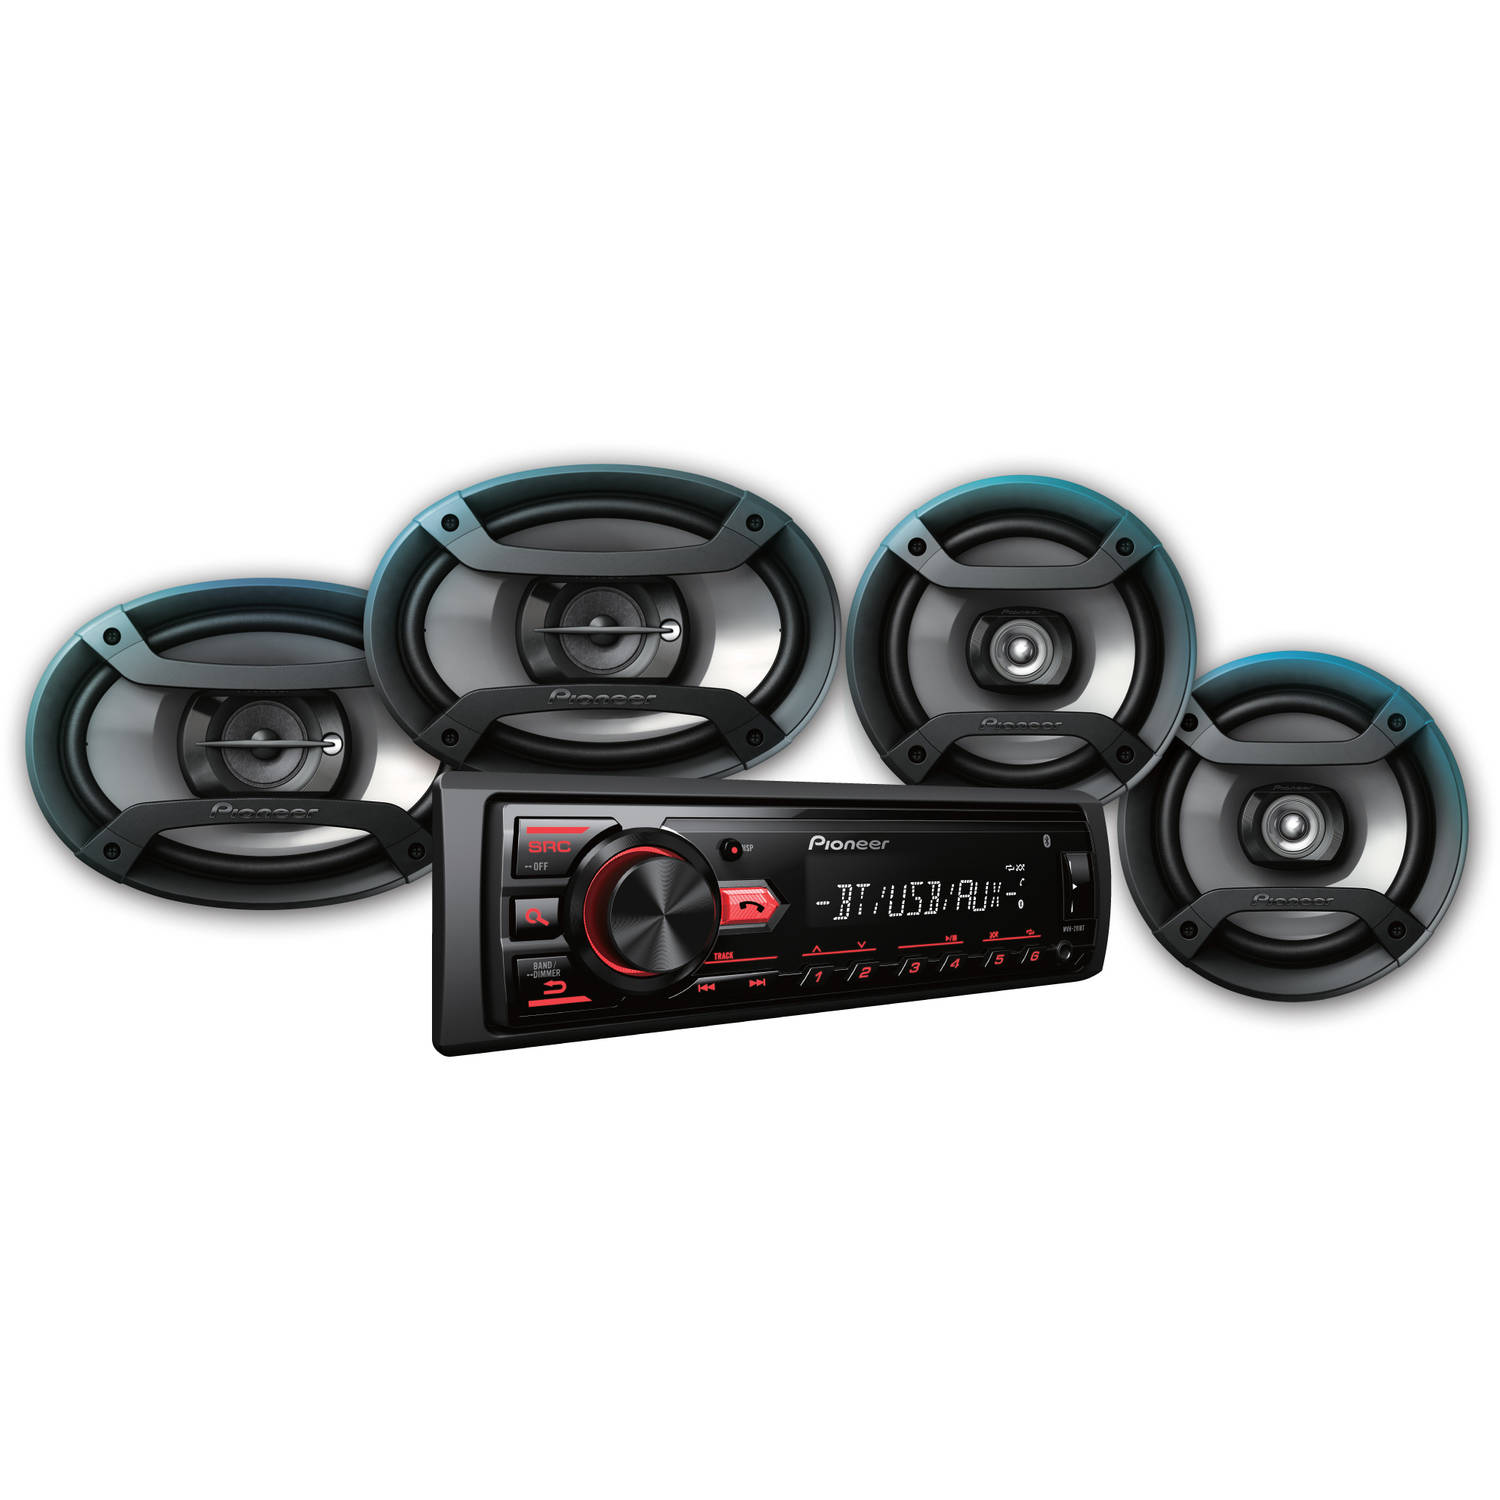 "Pioneer Bluetooth Car Stereo Receiver Bundle with Two 6.5"" Speakers, Two 6"" x 9"" Speakers, and USB and Aux Inputs"